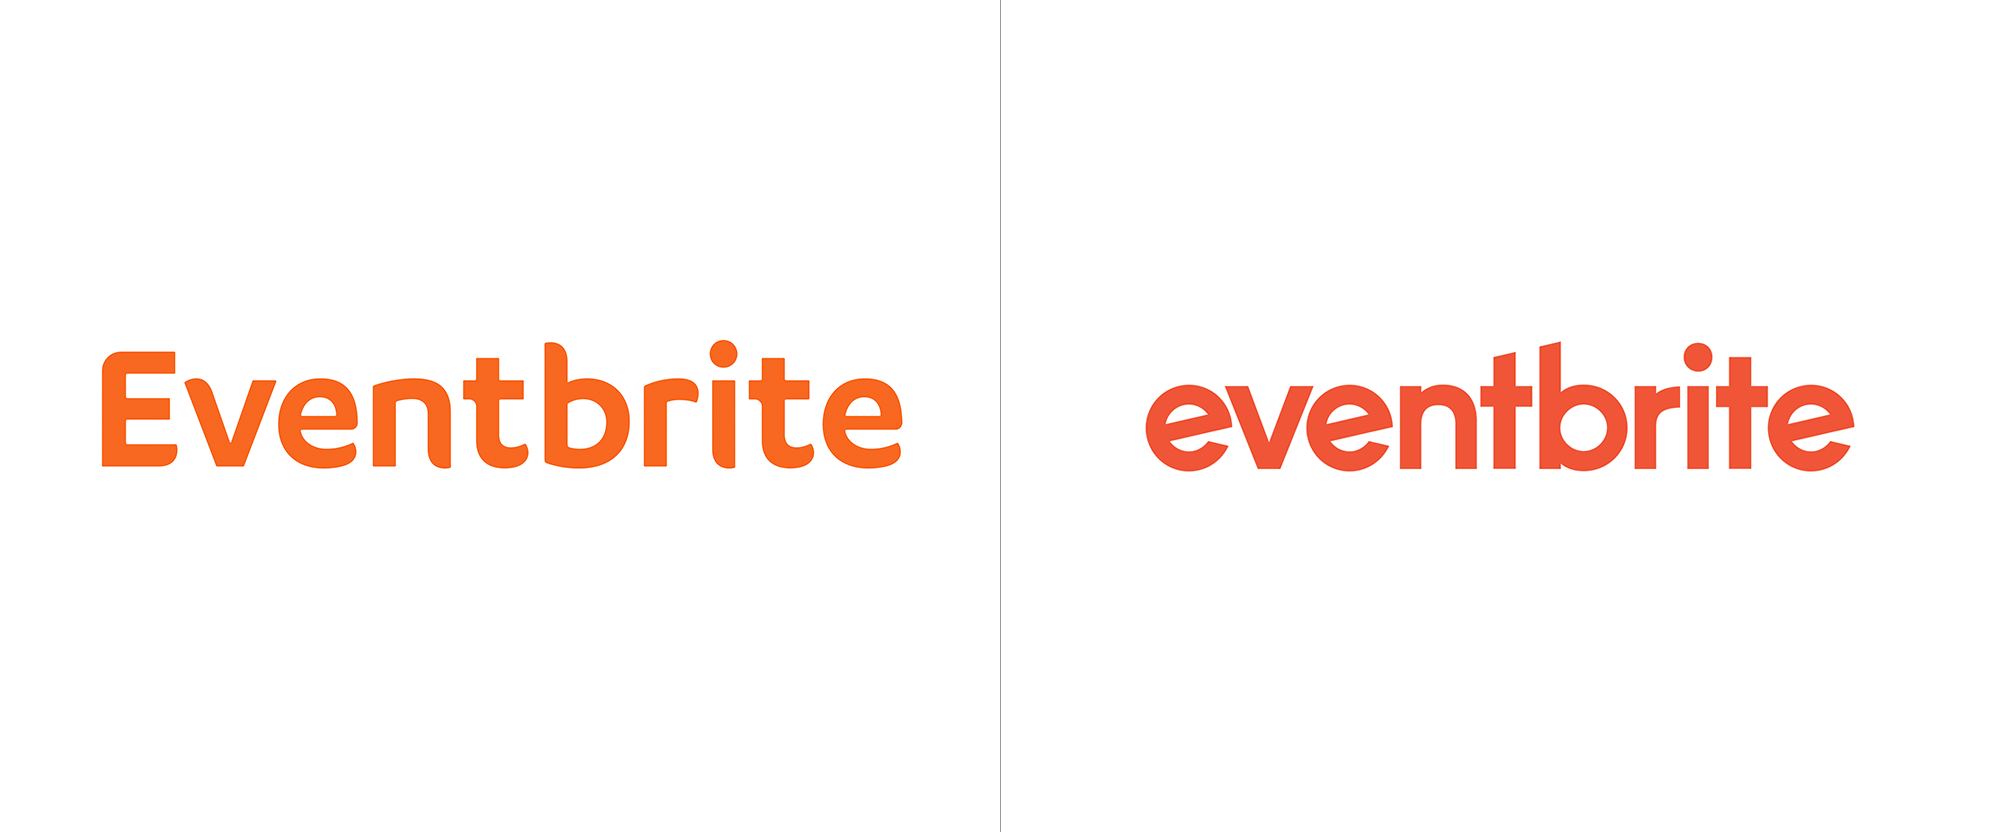 Follow-up: New Logo and Identity for Eventbrite by Moving Brands